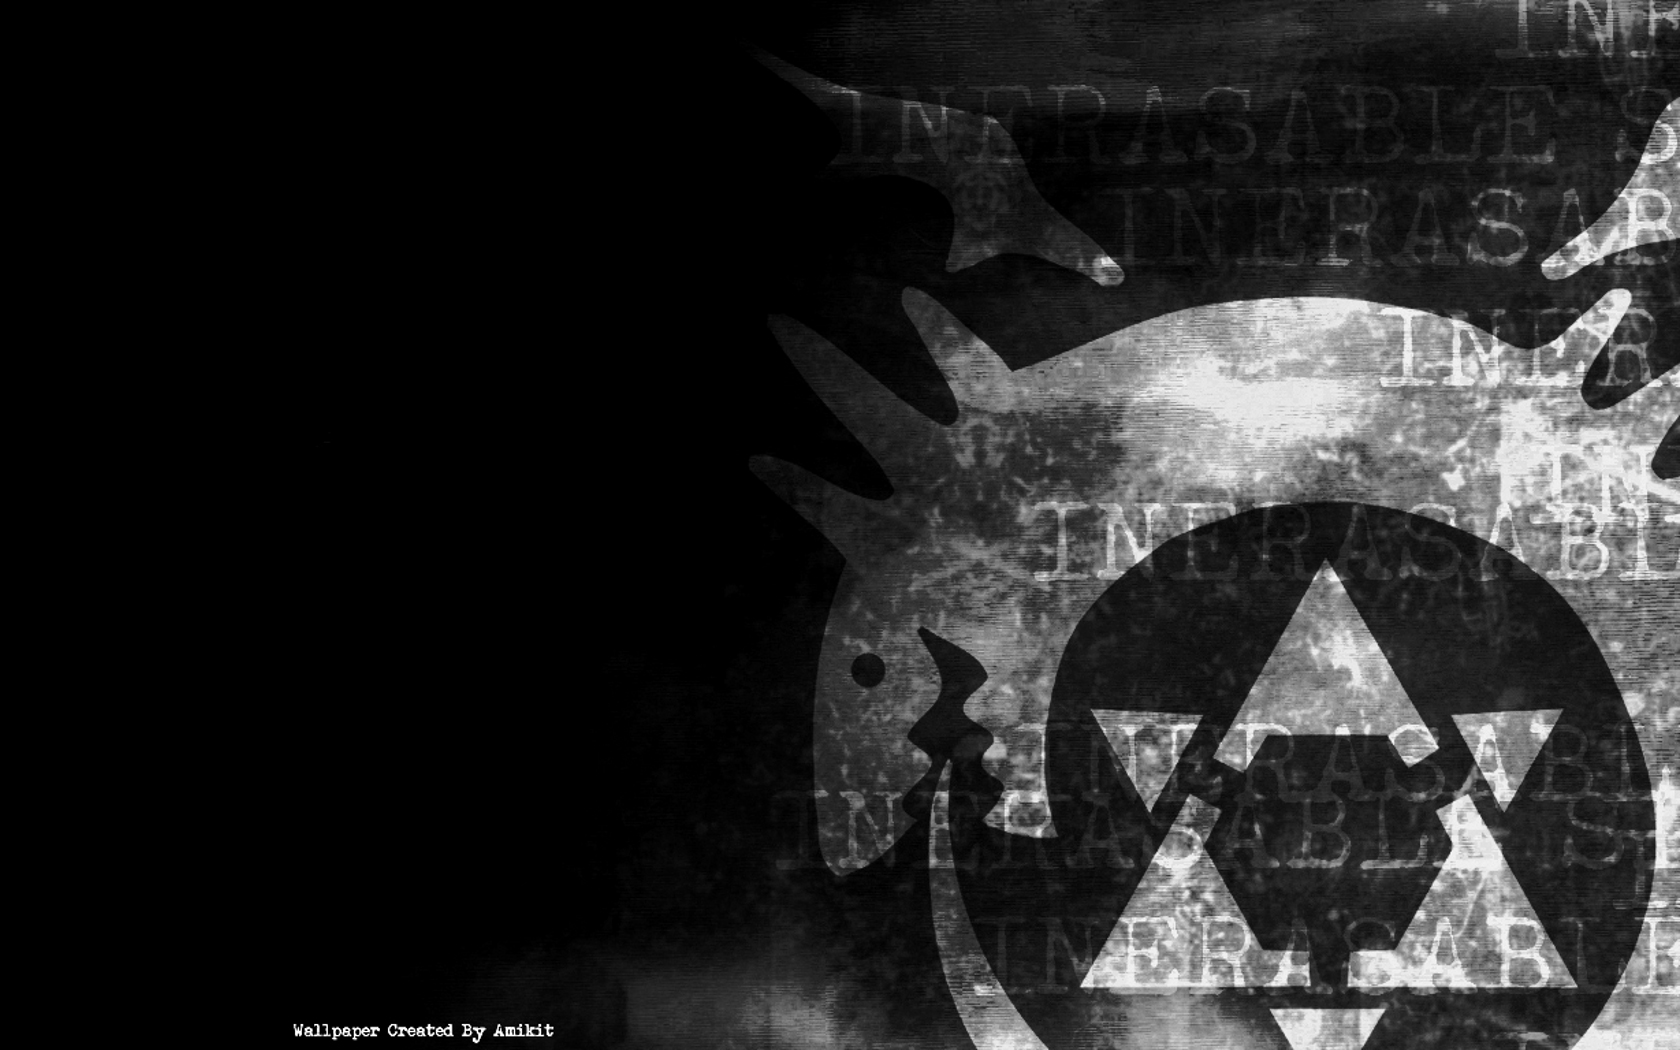 fullmetal alchemist desktop wallpaper